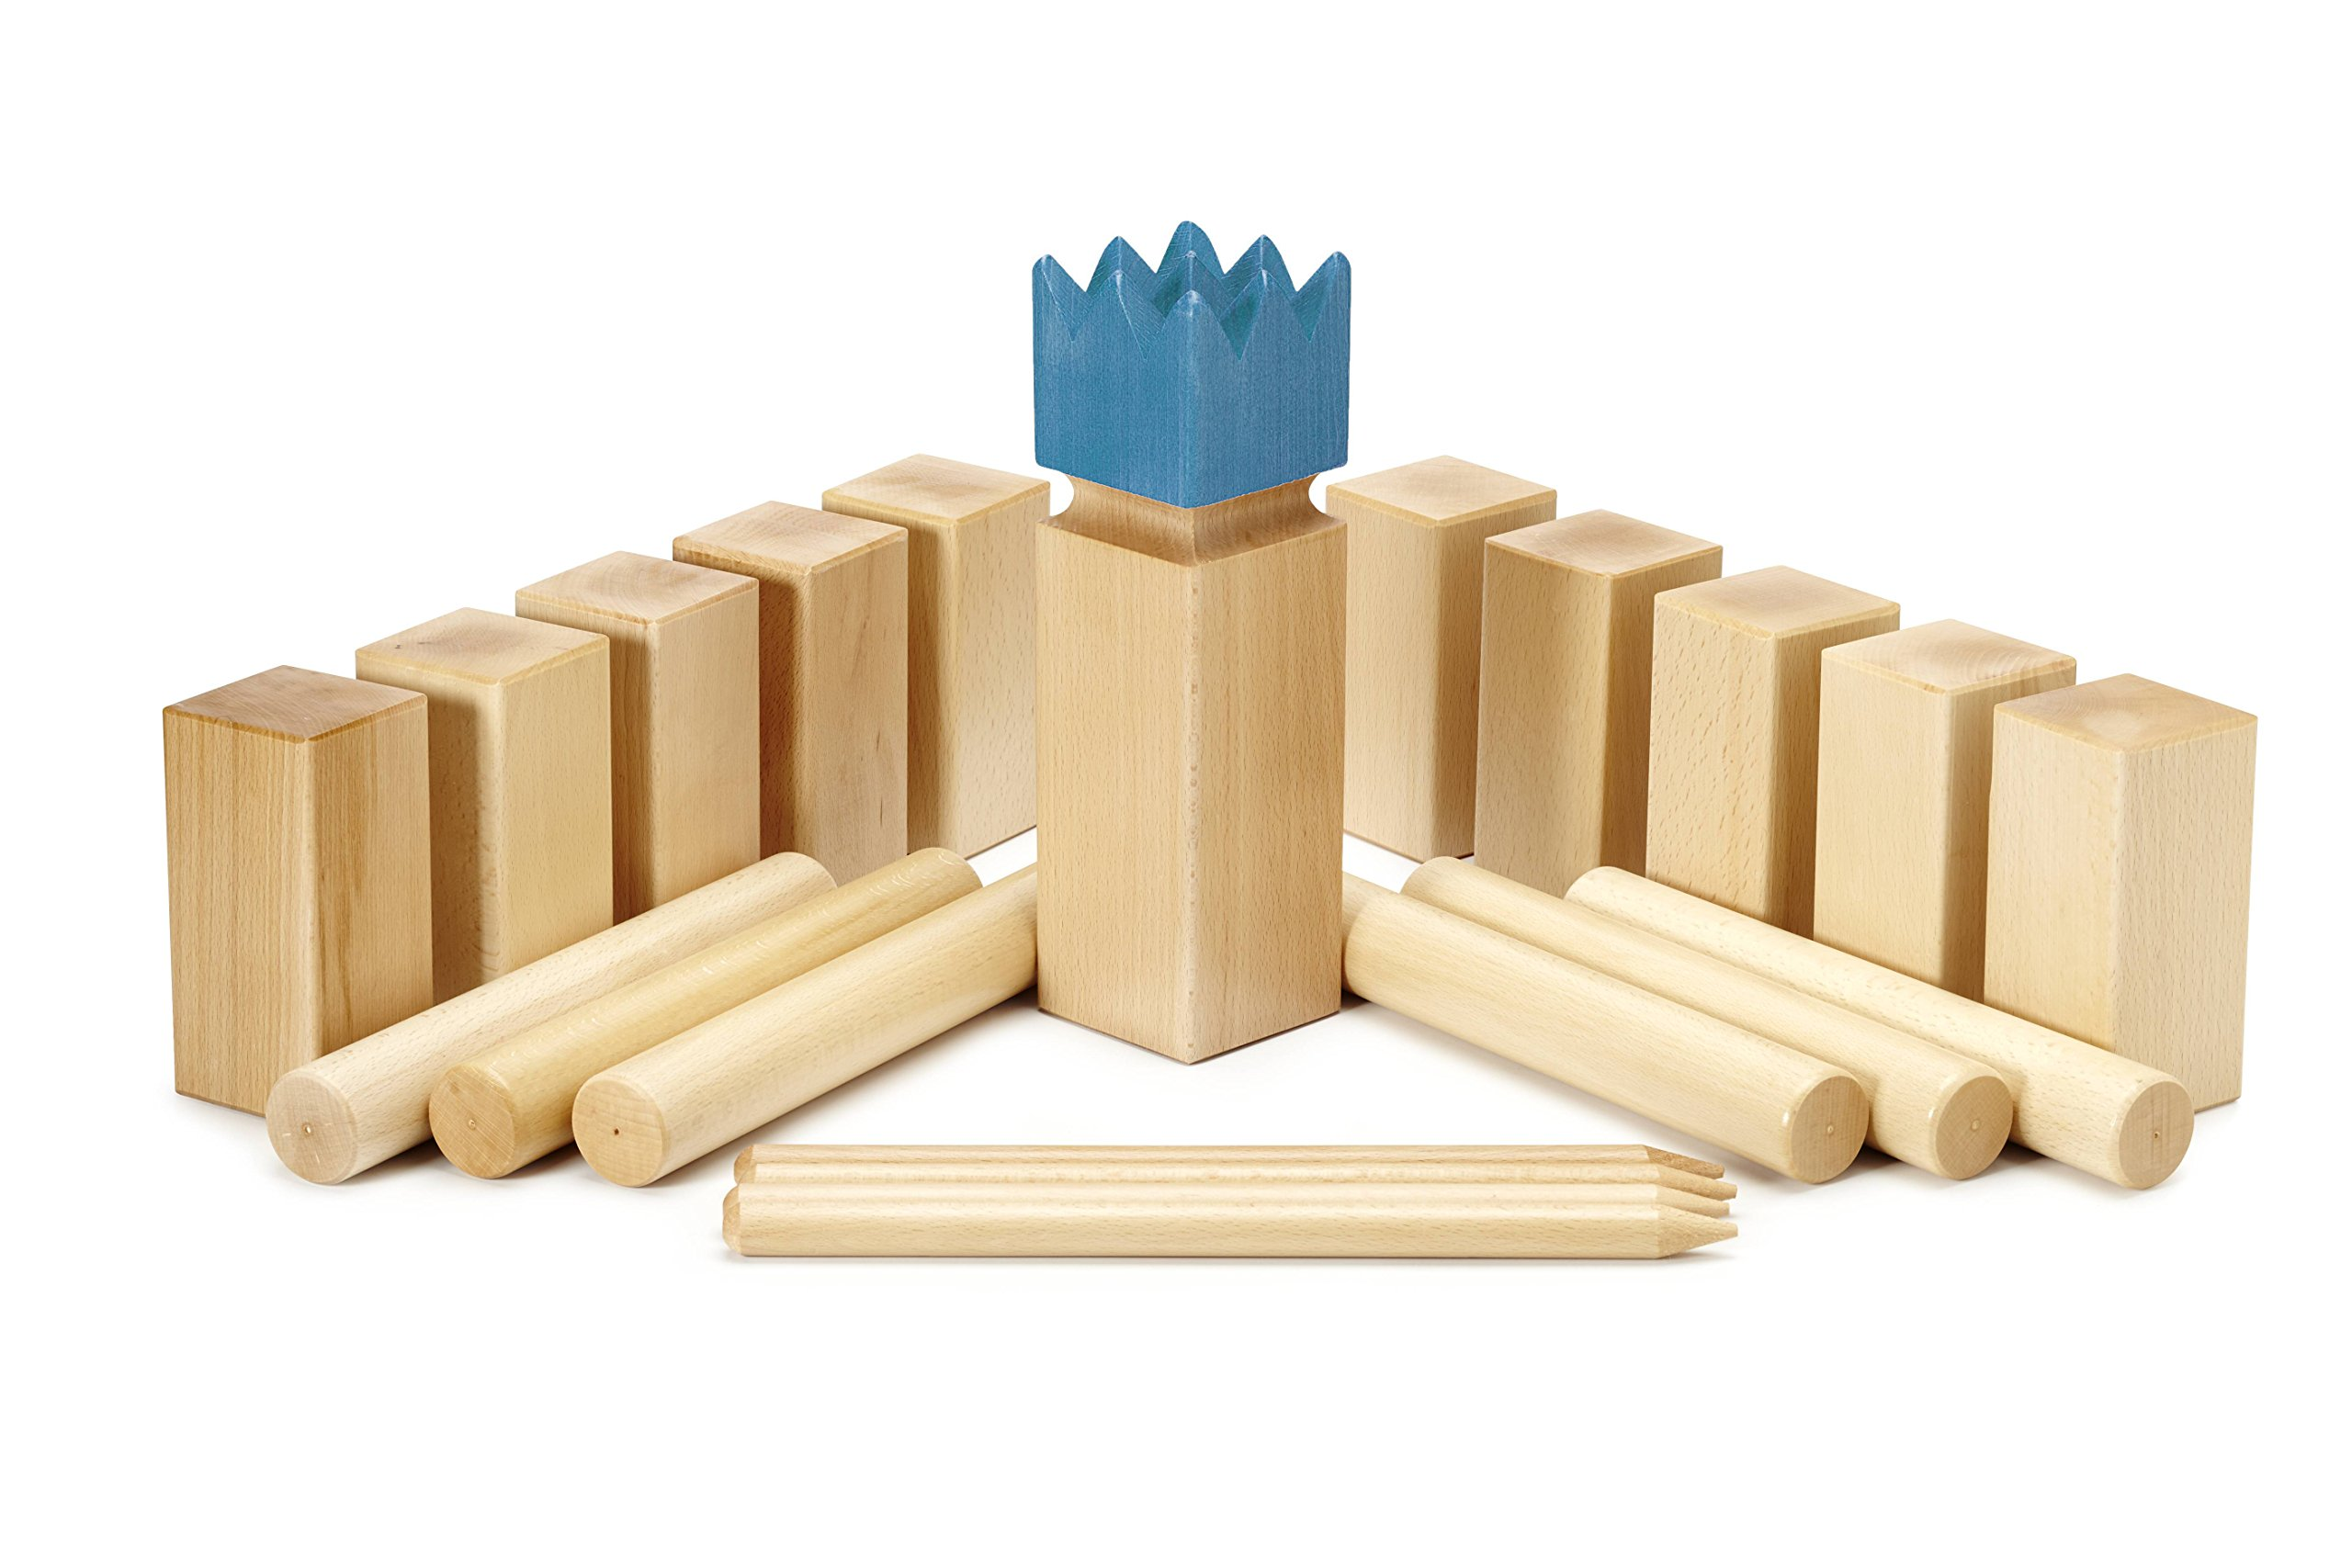 Kubbspel Classic Kubb Official U.S. Tournament Size Blue King (Made in Italy) Lawn Game 19.8 lbs.